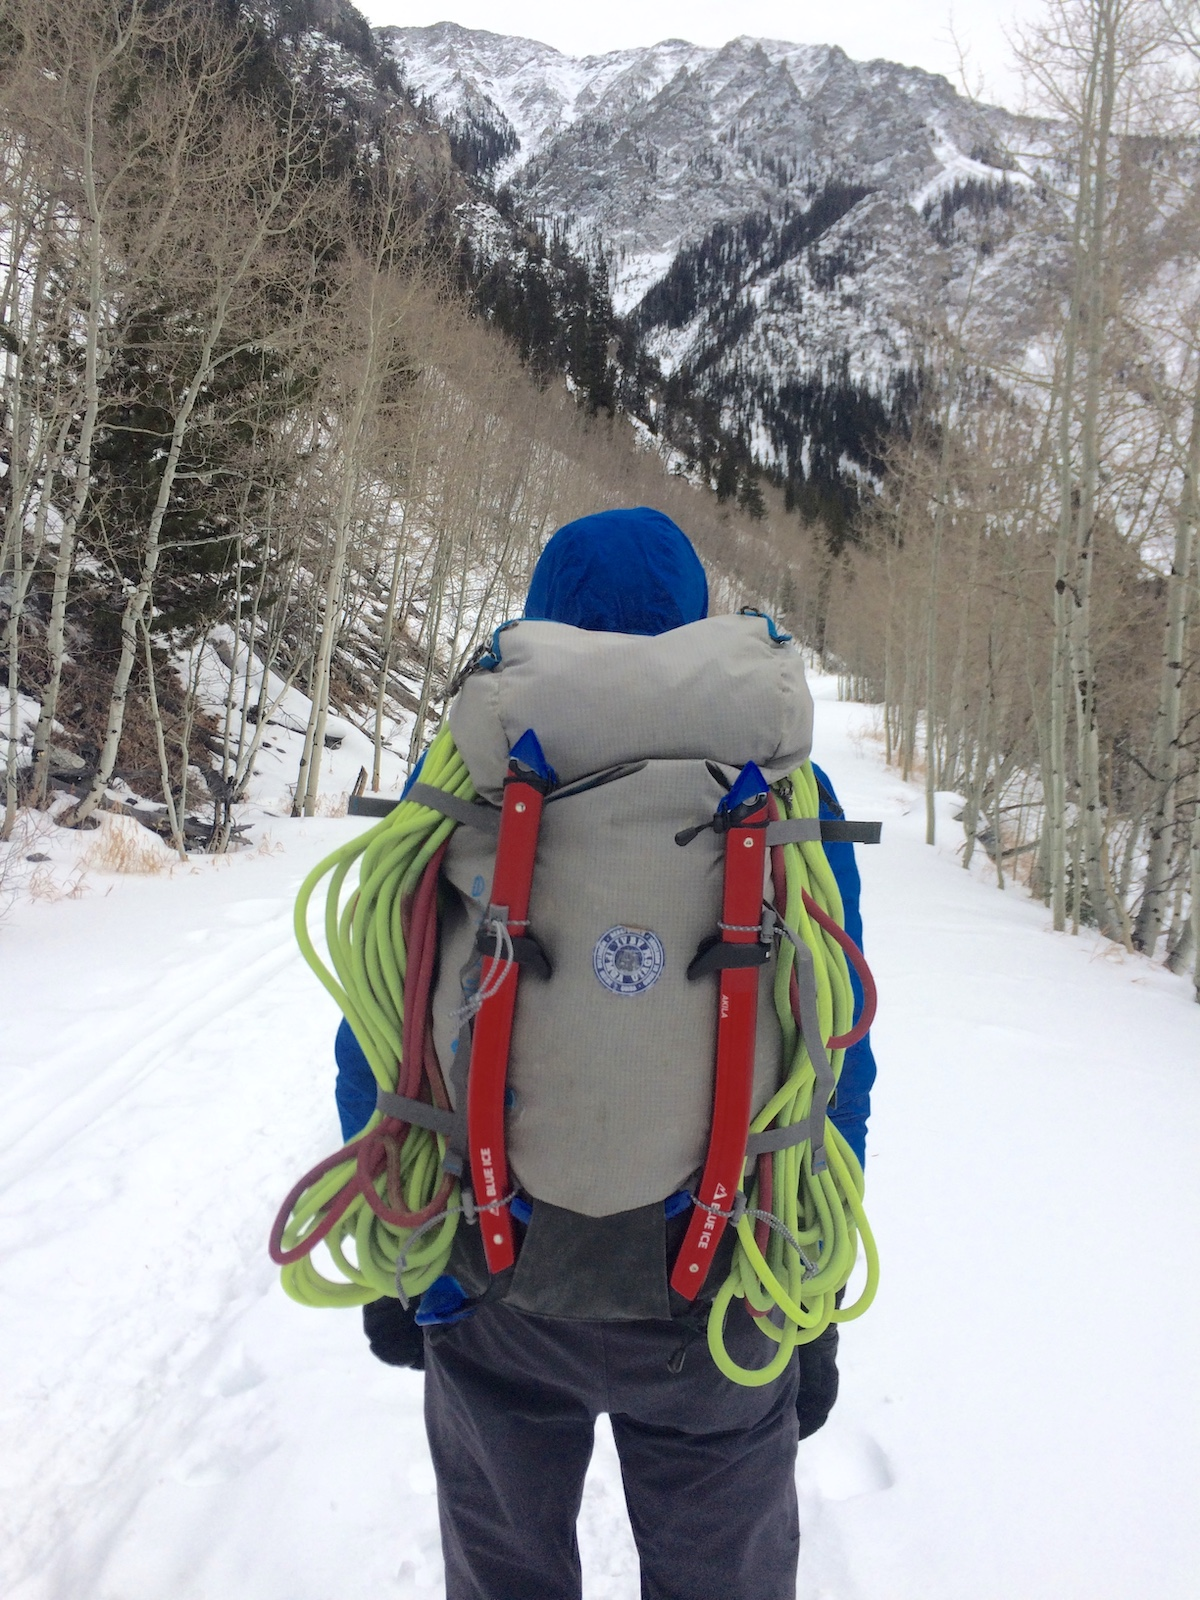 Mike Lewis carries the Blue Ice Akila ice axes into the Colorado Backcountry for a day of alpine ice climbing. [Photo] Yaroslav Lototskyy